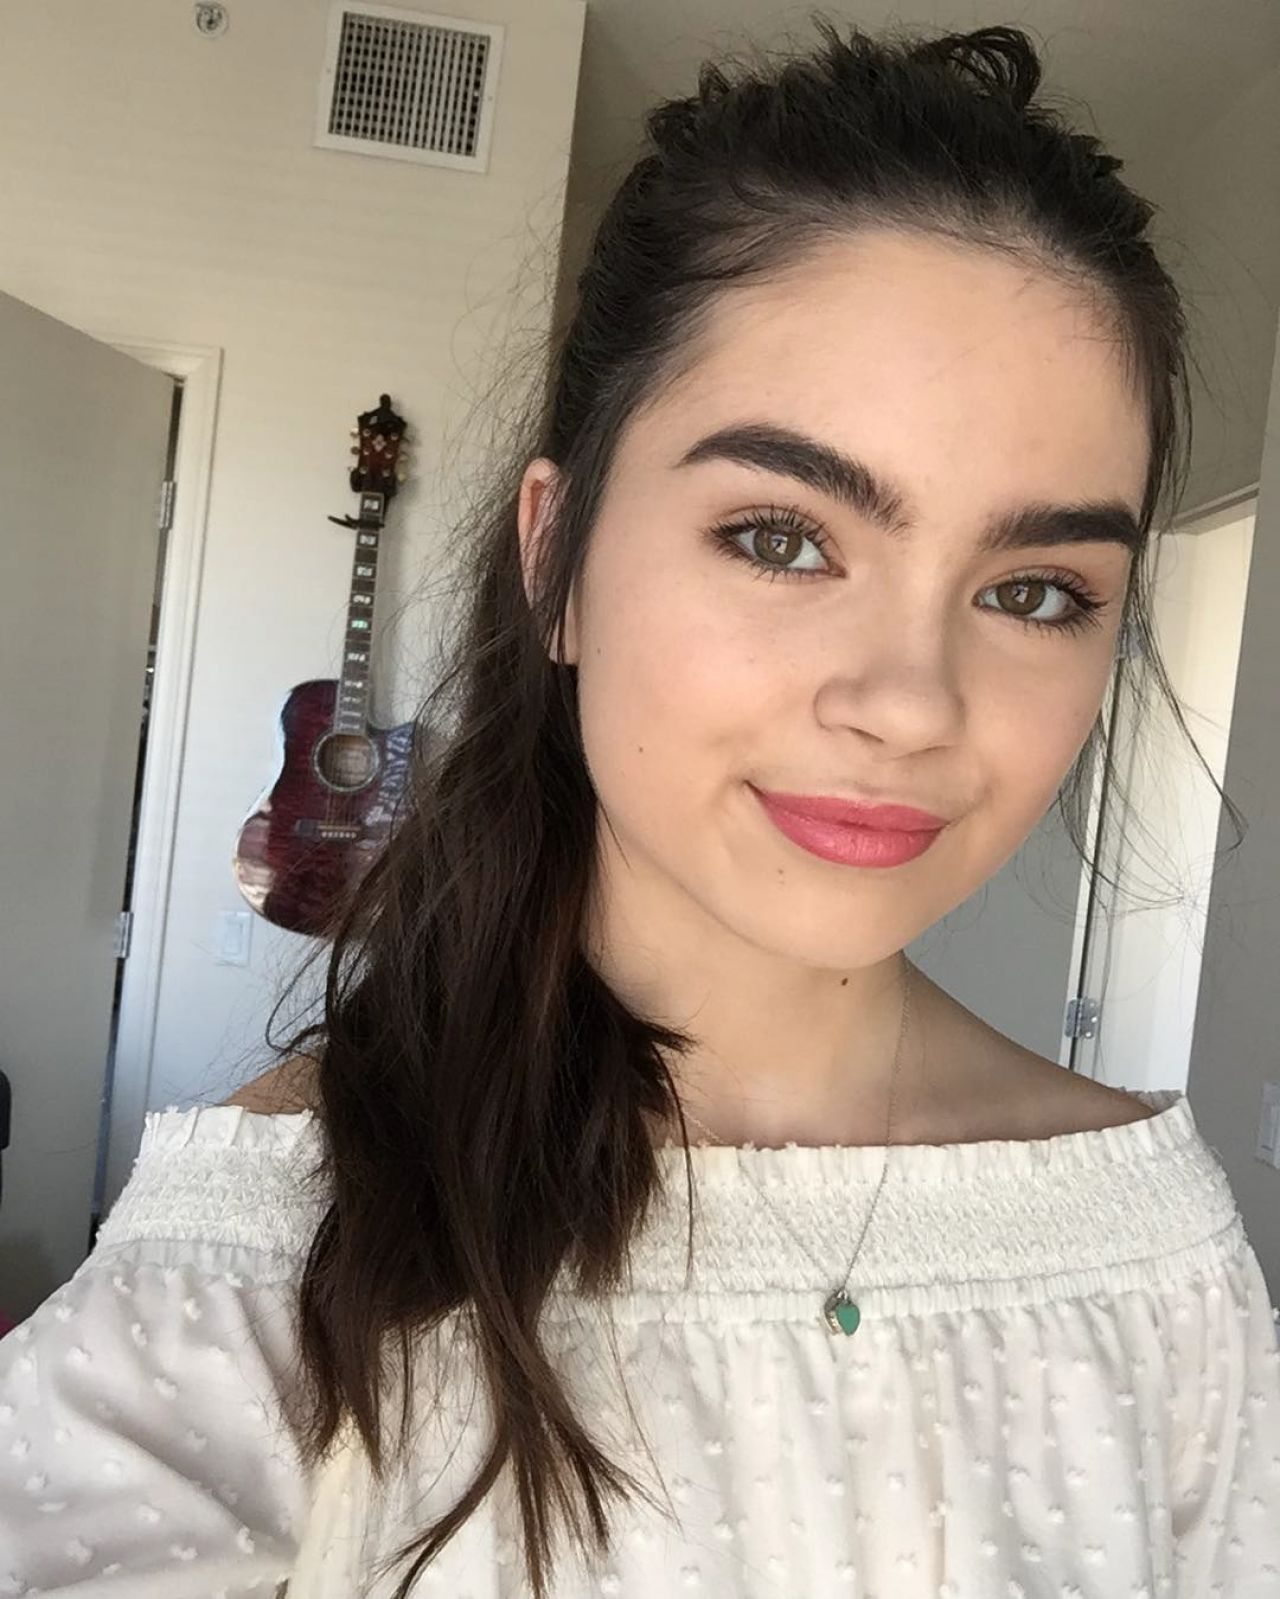 landry-bender-photos-social-media-jan-feb-2017-1.jpg